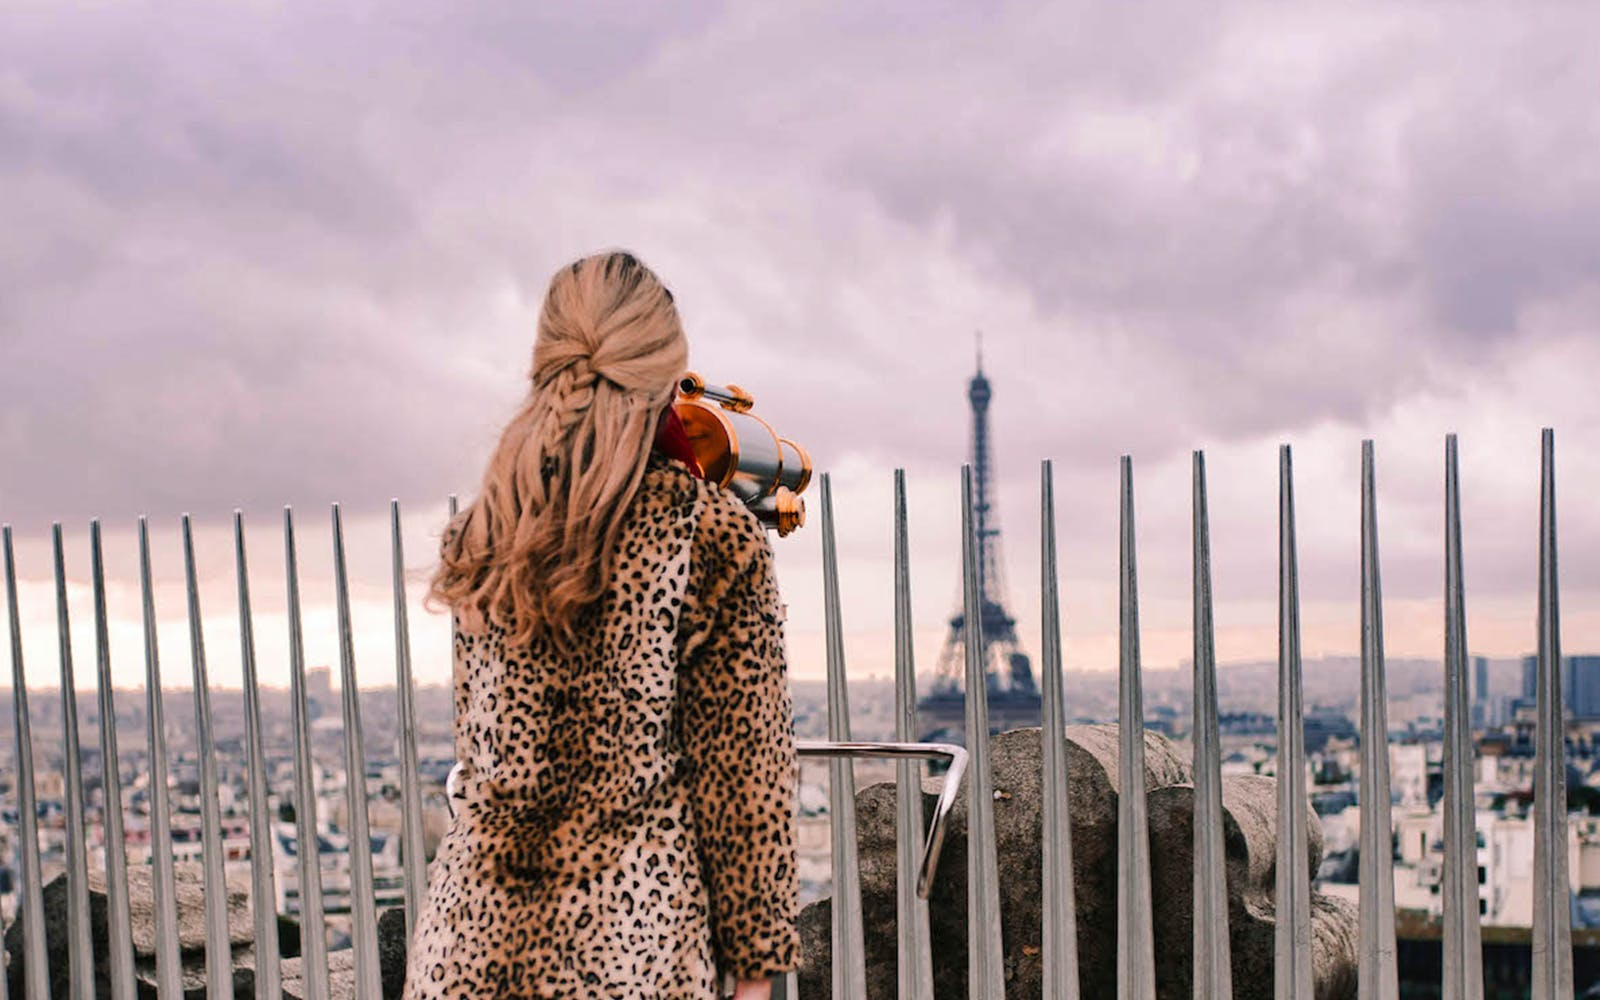 Skip The Line: Arc de Triomphe Rooftop Tickets